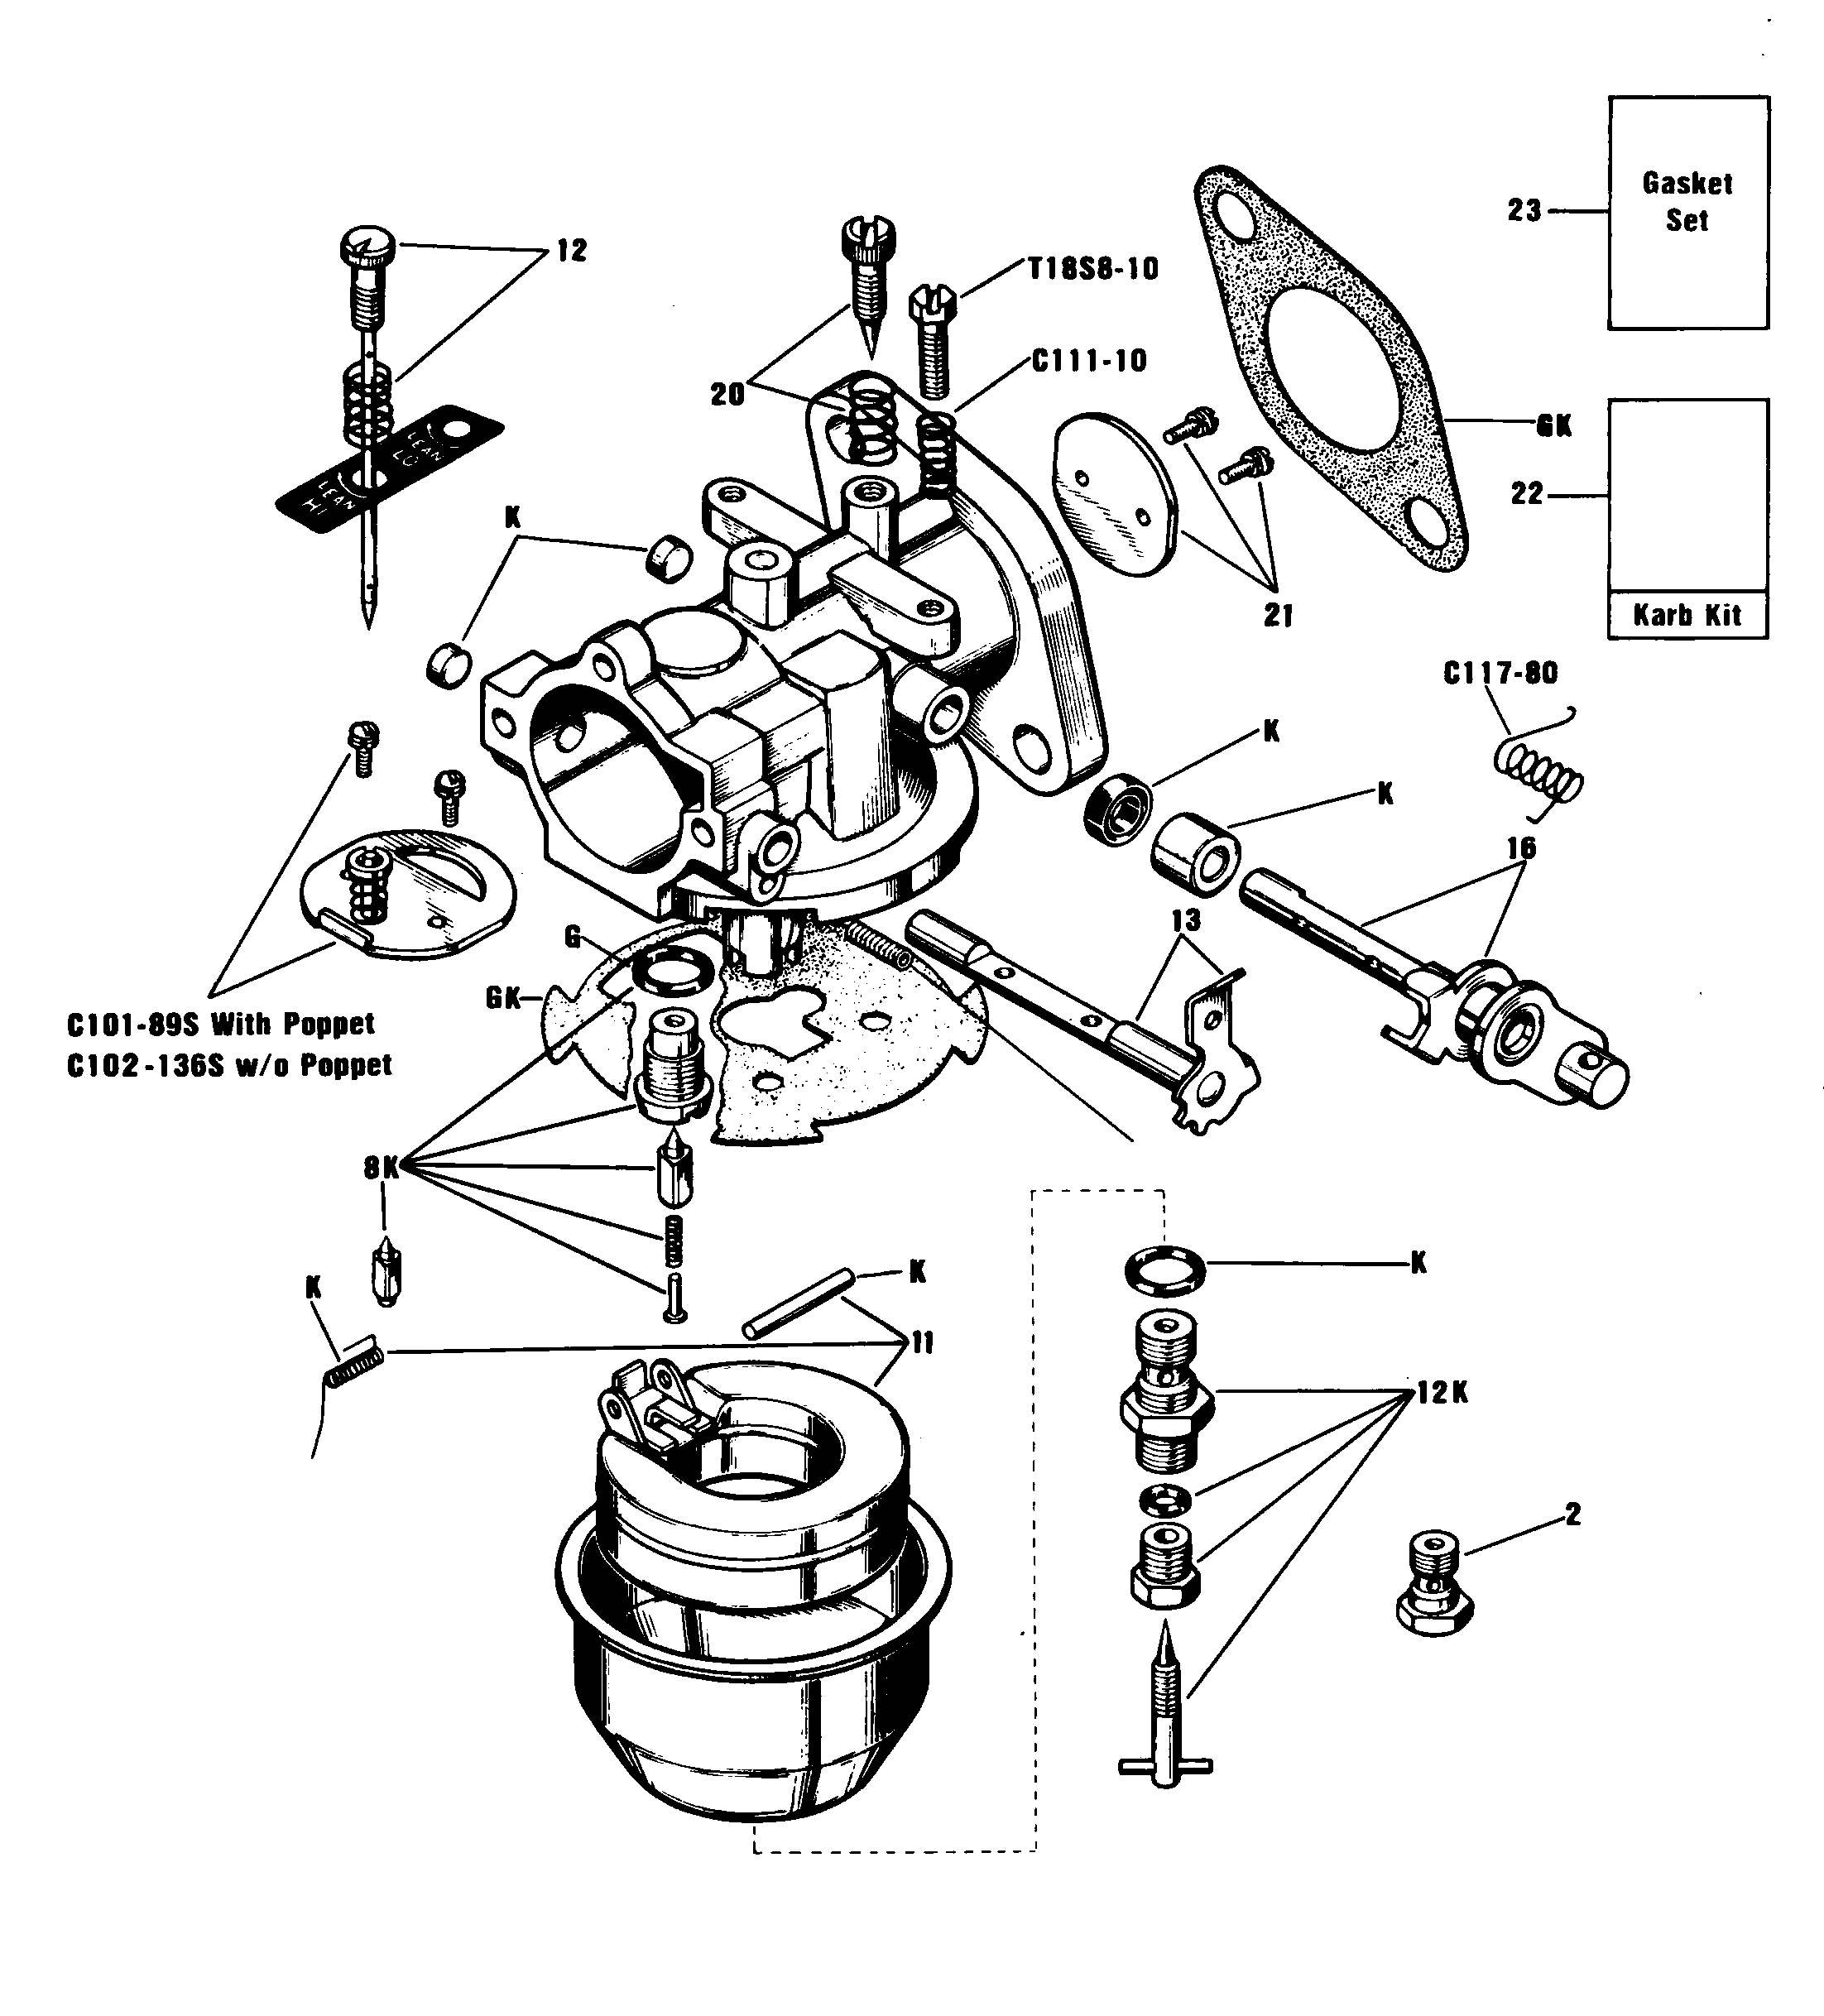 stromberg carburetor diagram 6 pin adapter zenith 13656 kit float and manual